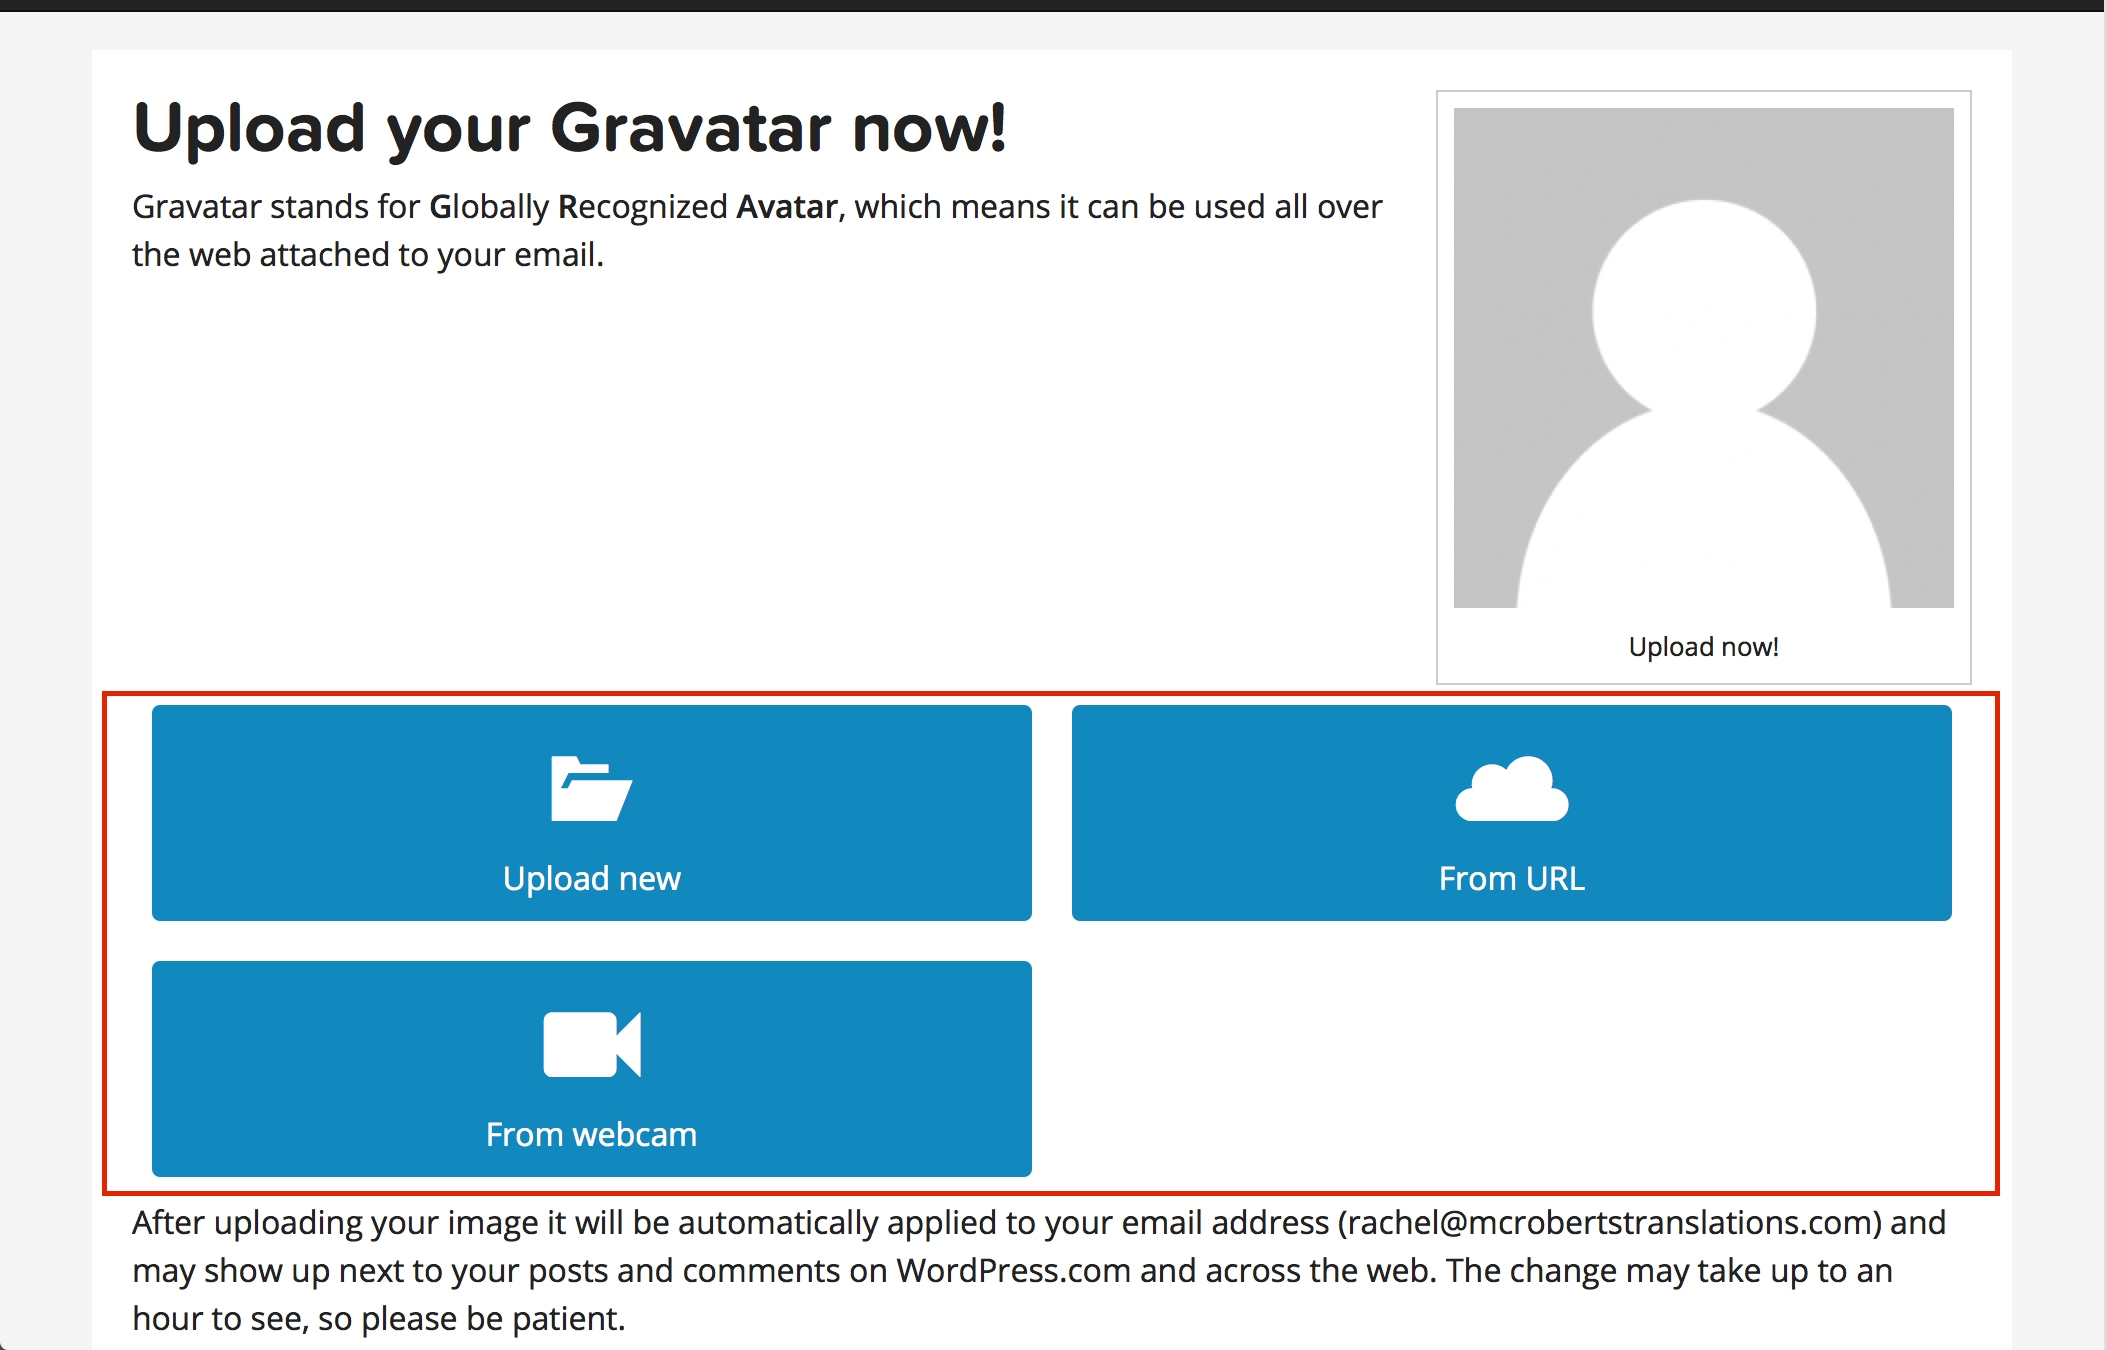 Upload your Gravatar now